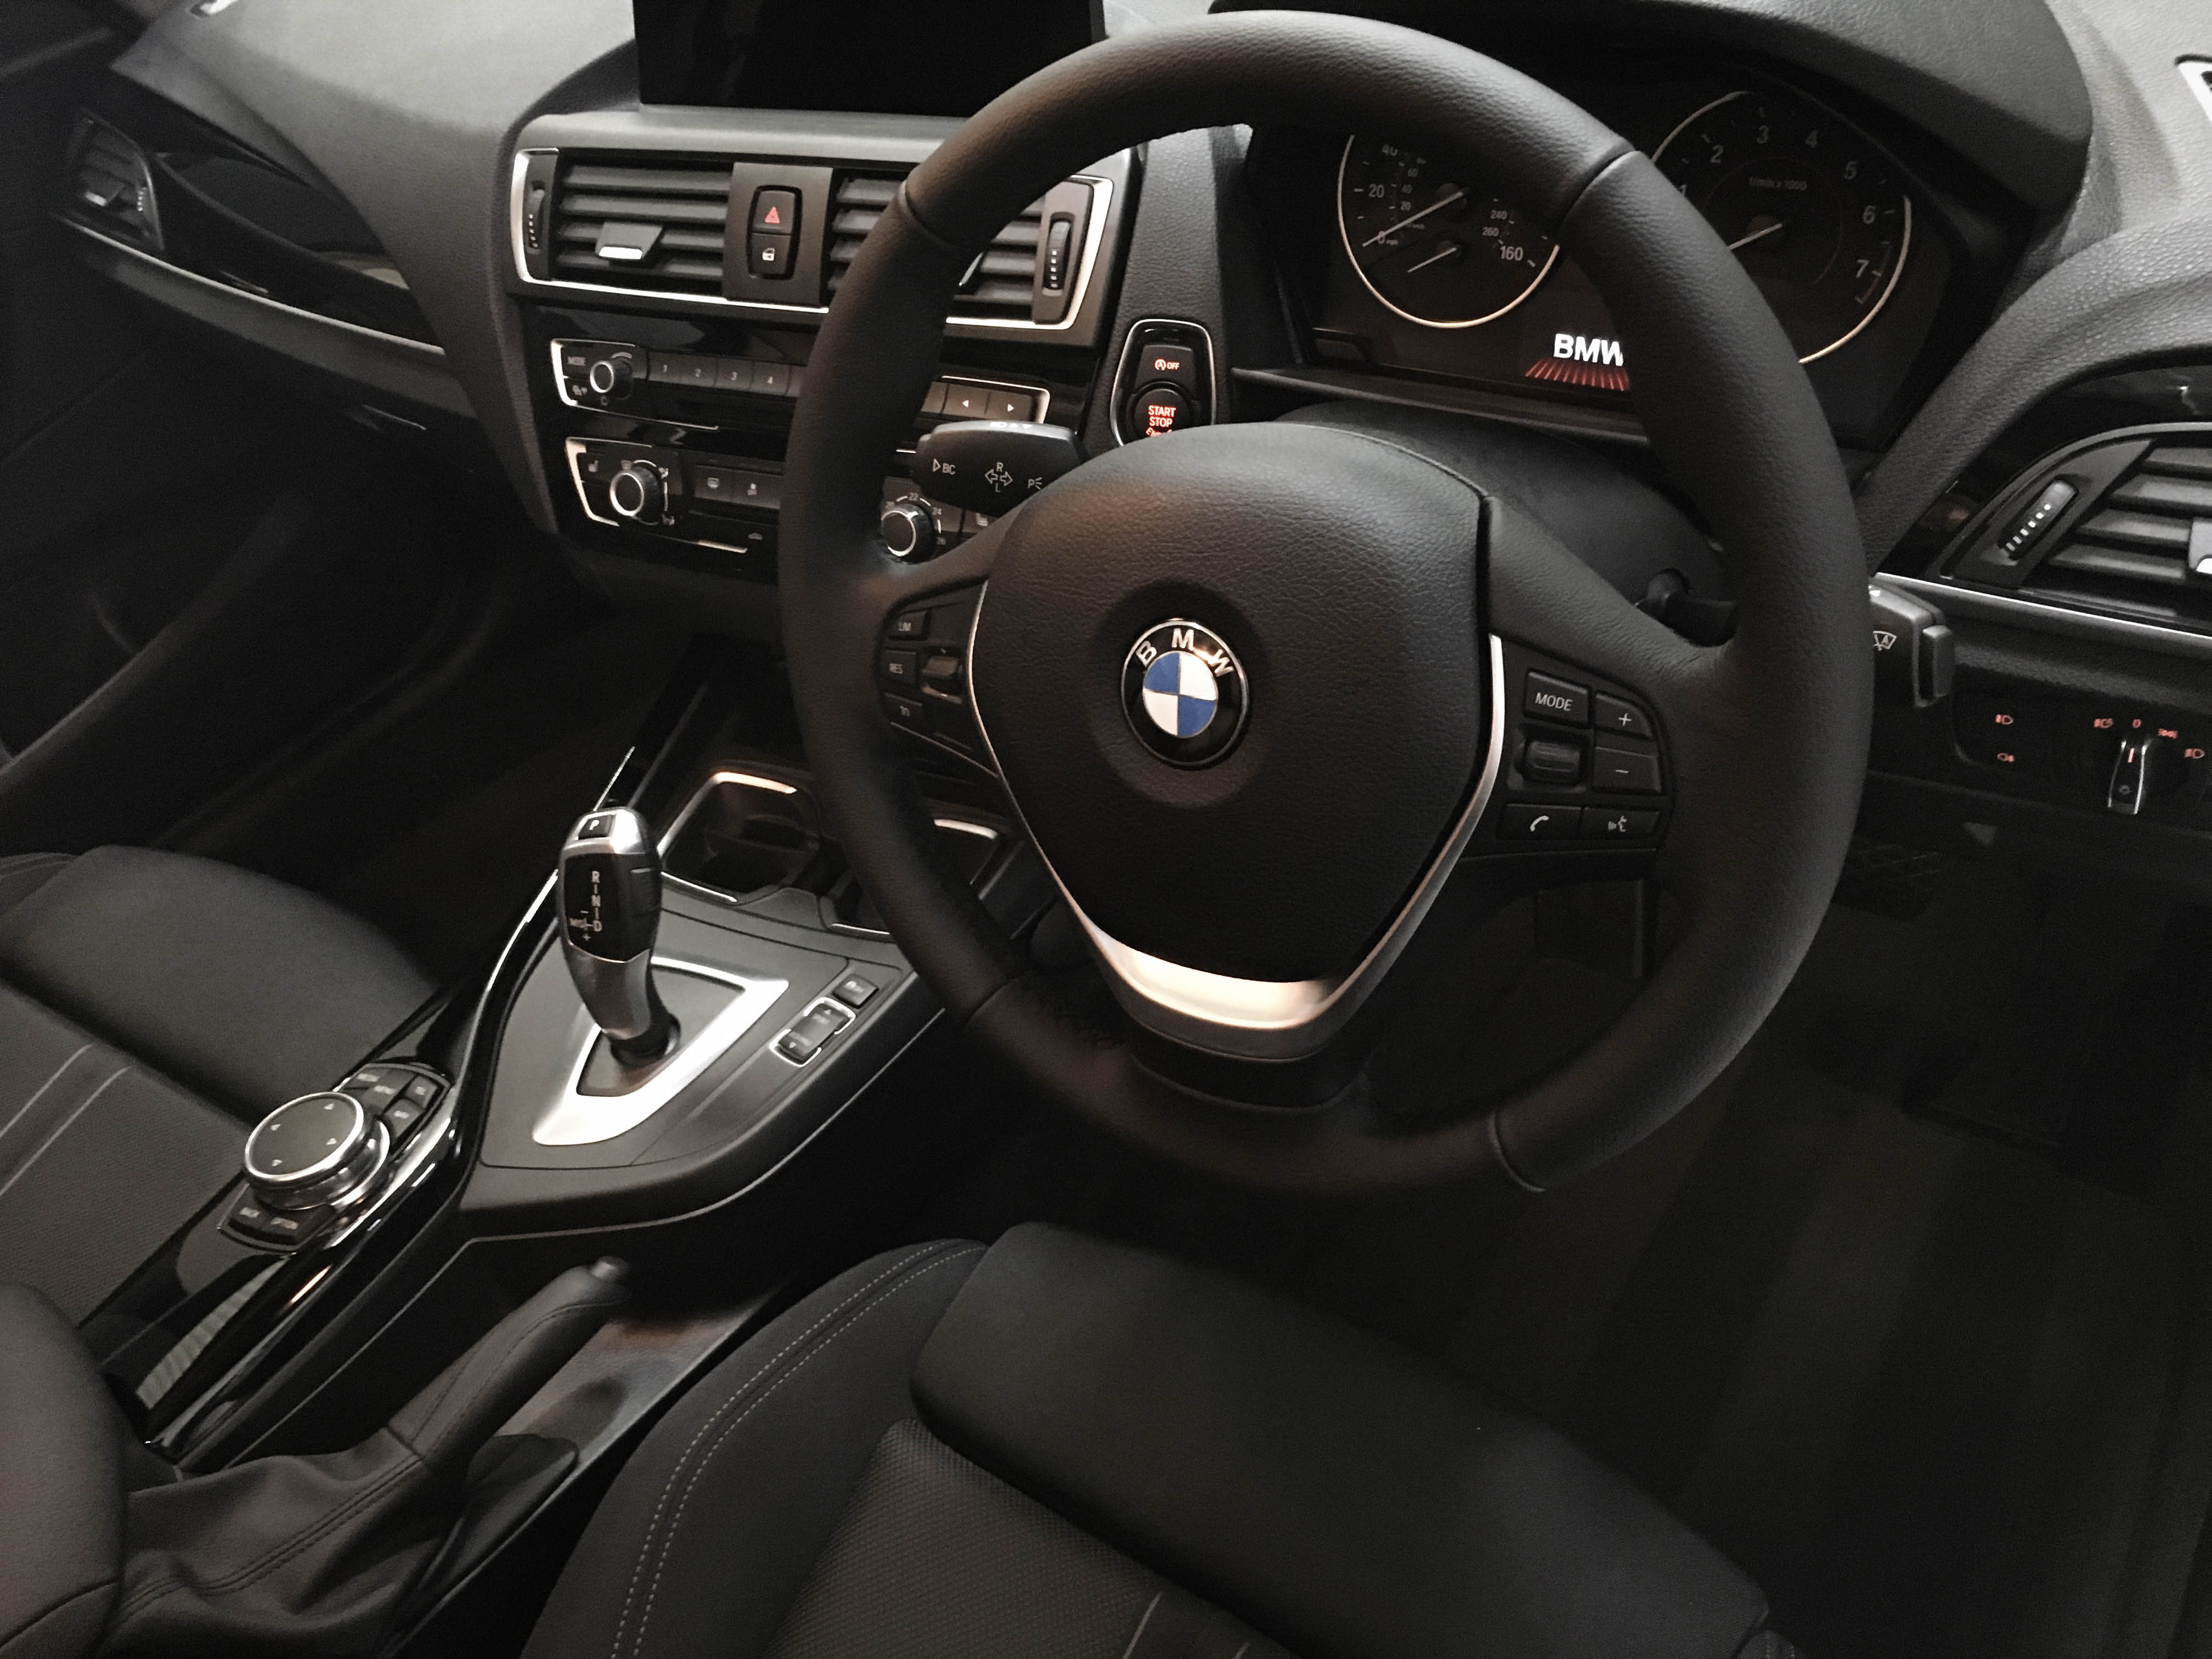 BMW 1series – Interior